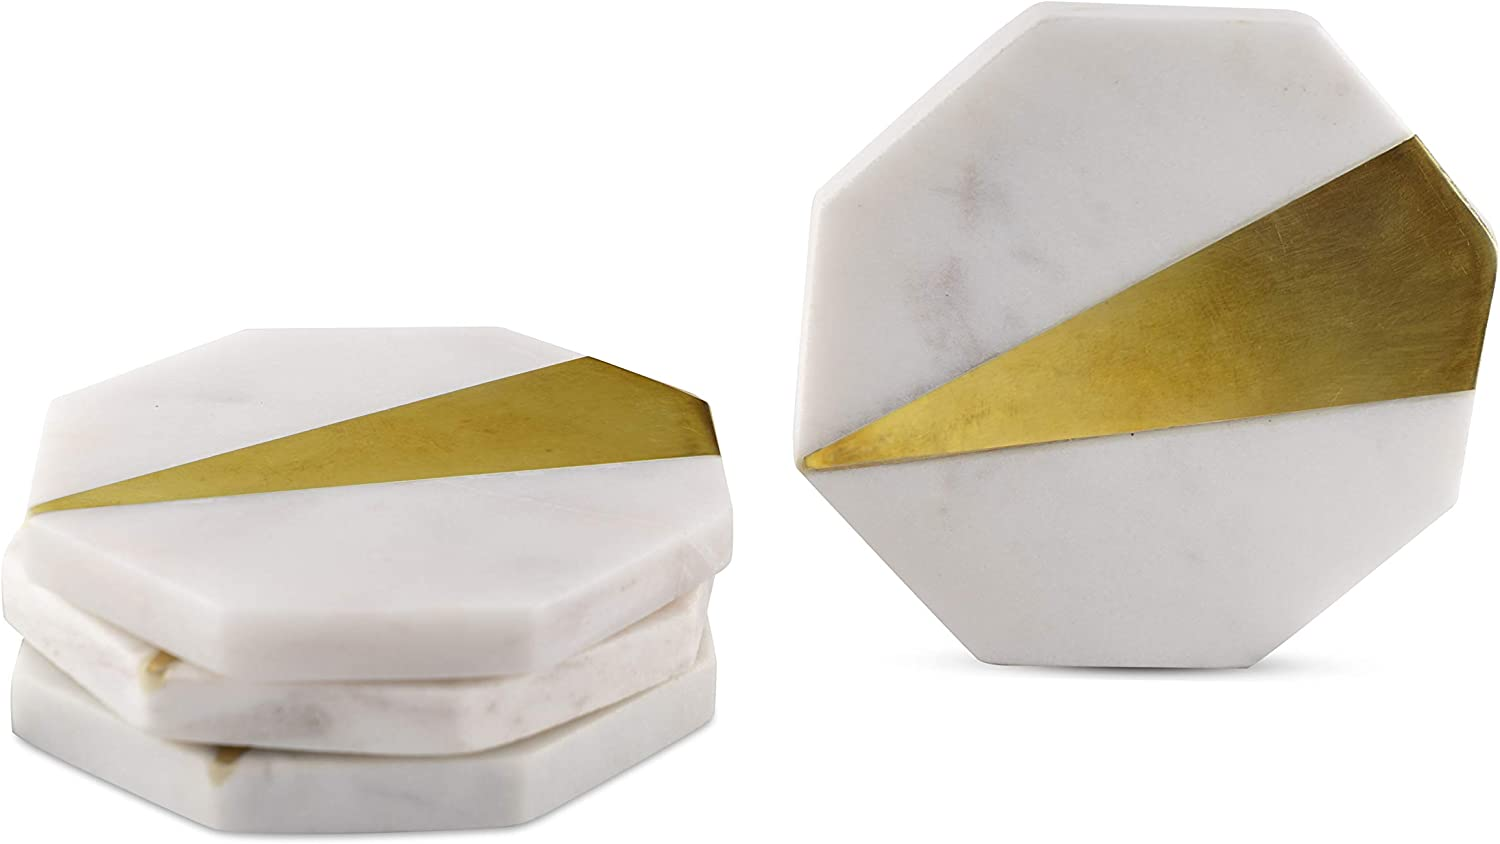 GoCraft Brass & Marble Coasters | Handcrafted Geometric White Marble Coasters with Brass Inlay for your Drinks, Beverages & Wine/Bar Glasses (Set of 4)